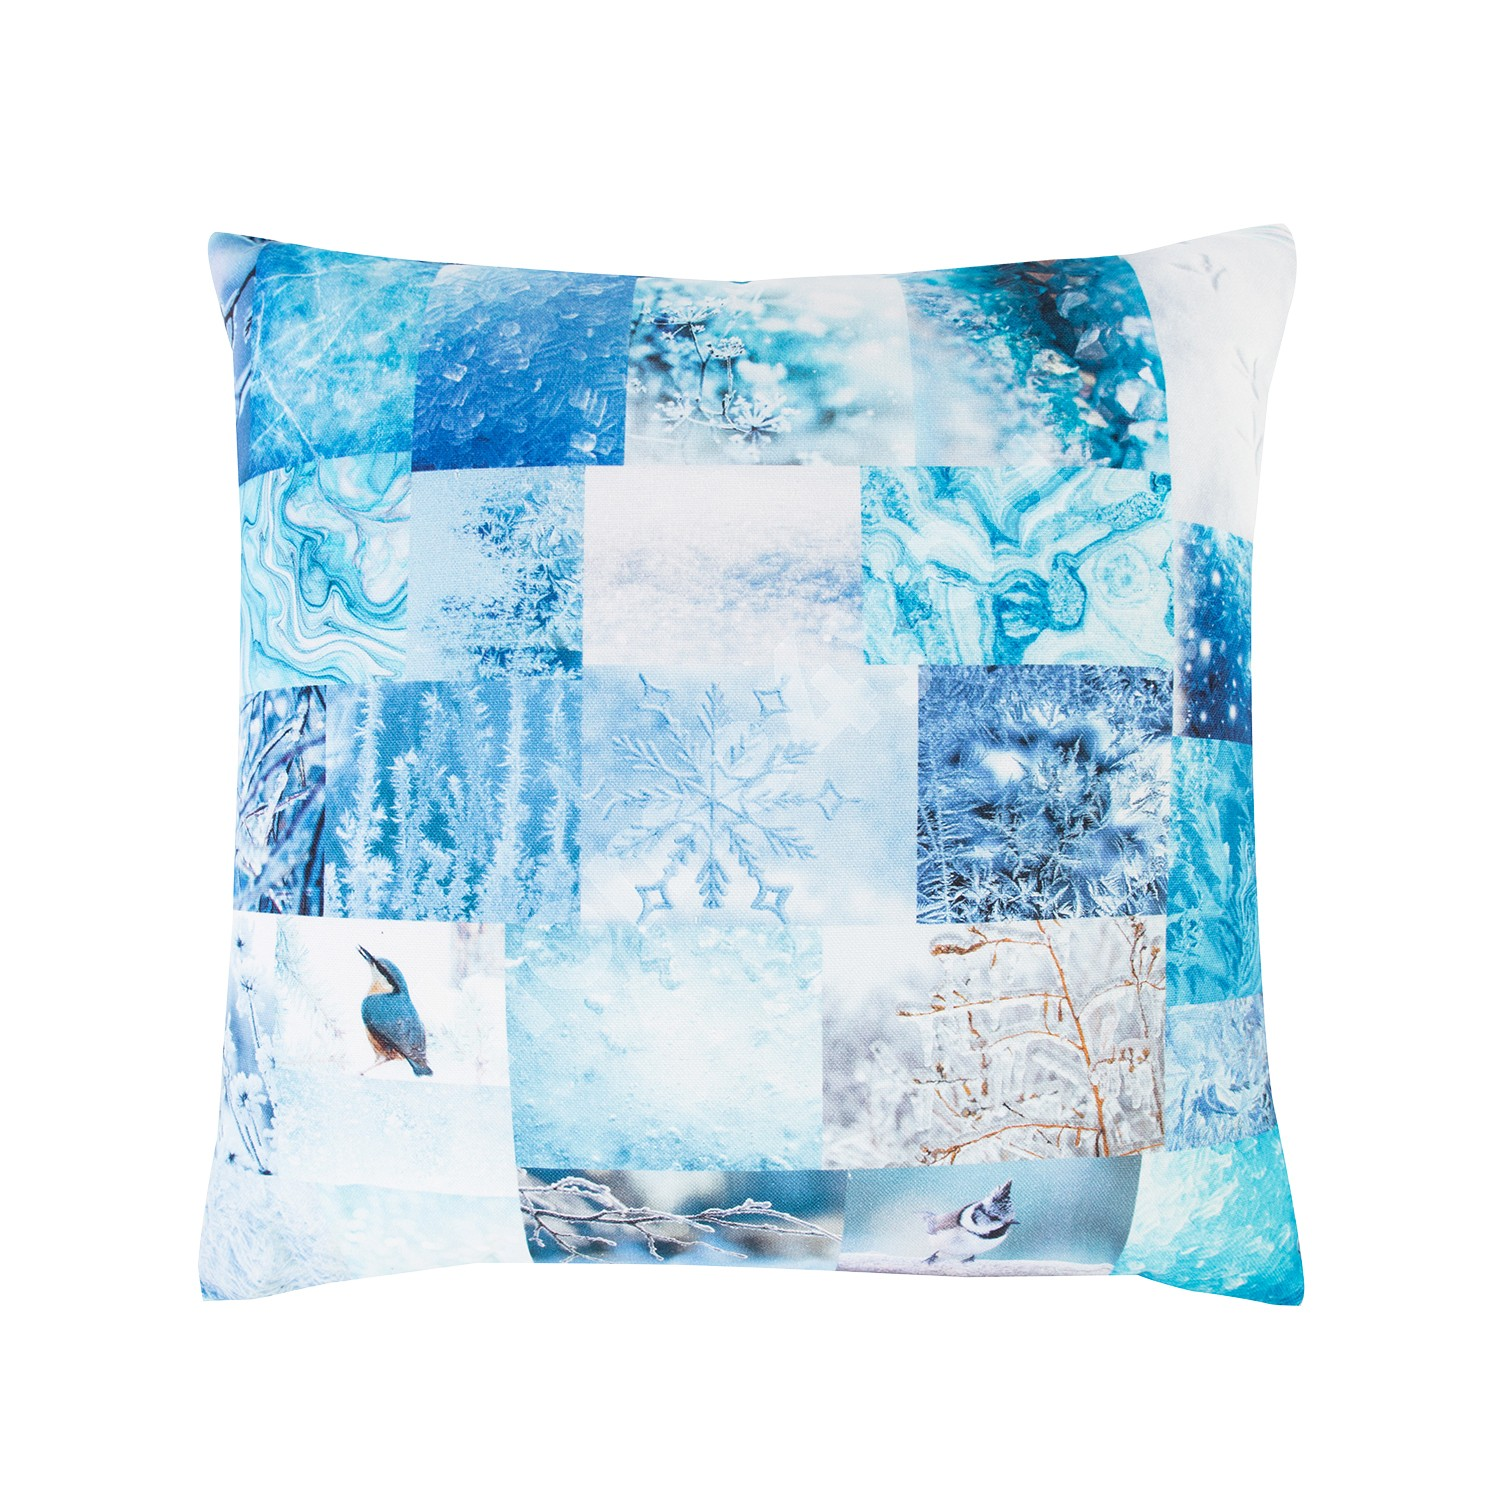 Pillow XMAS STORY 45x45cm, winter, 100%cotton, fabric-755